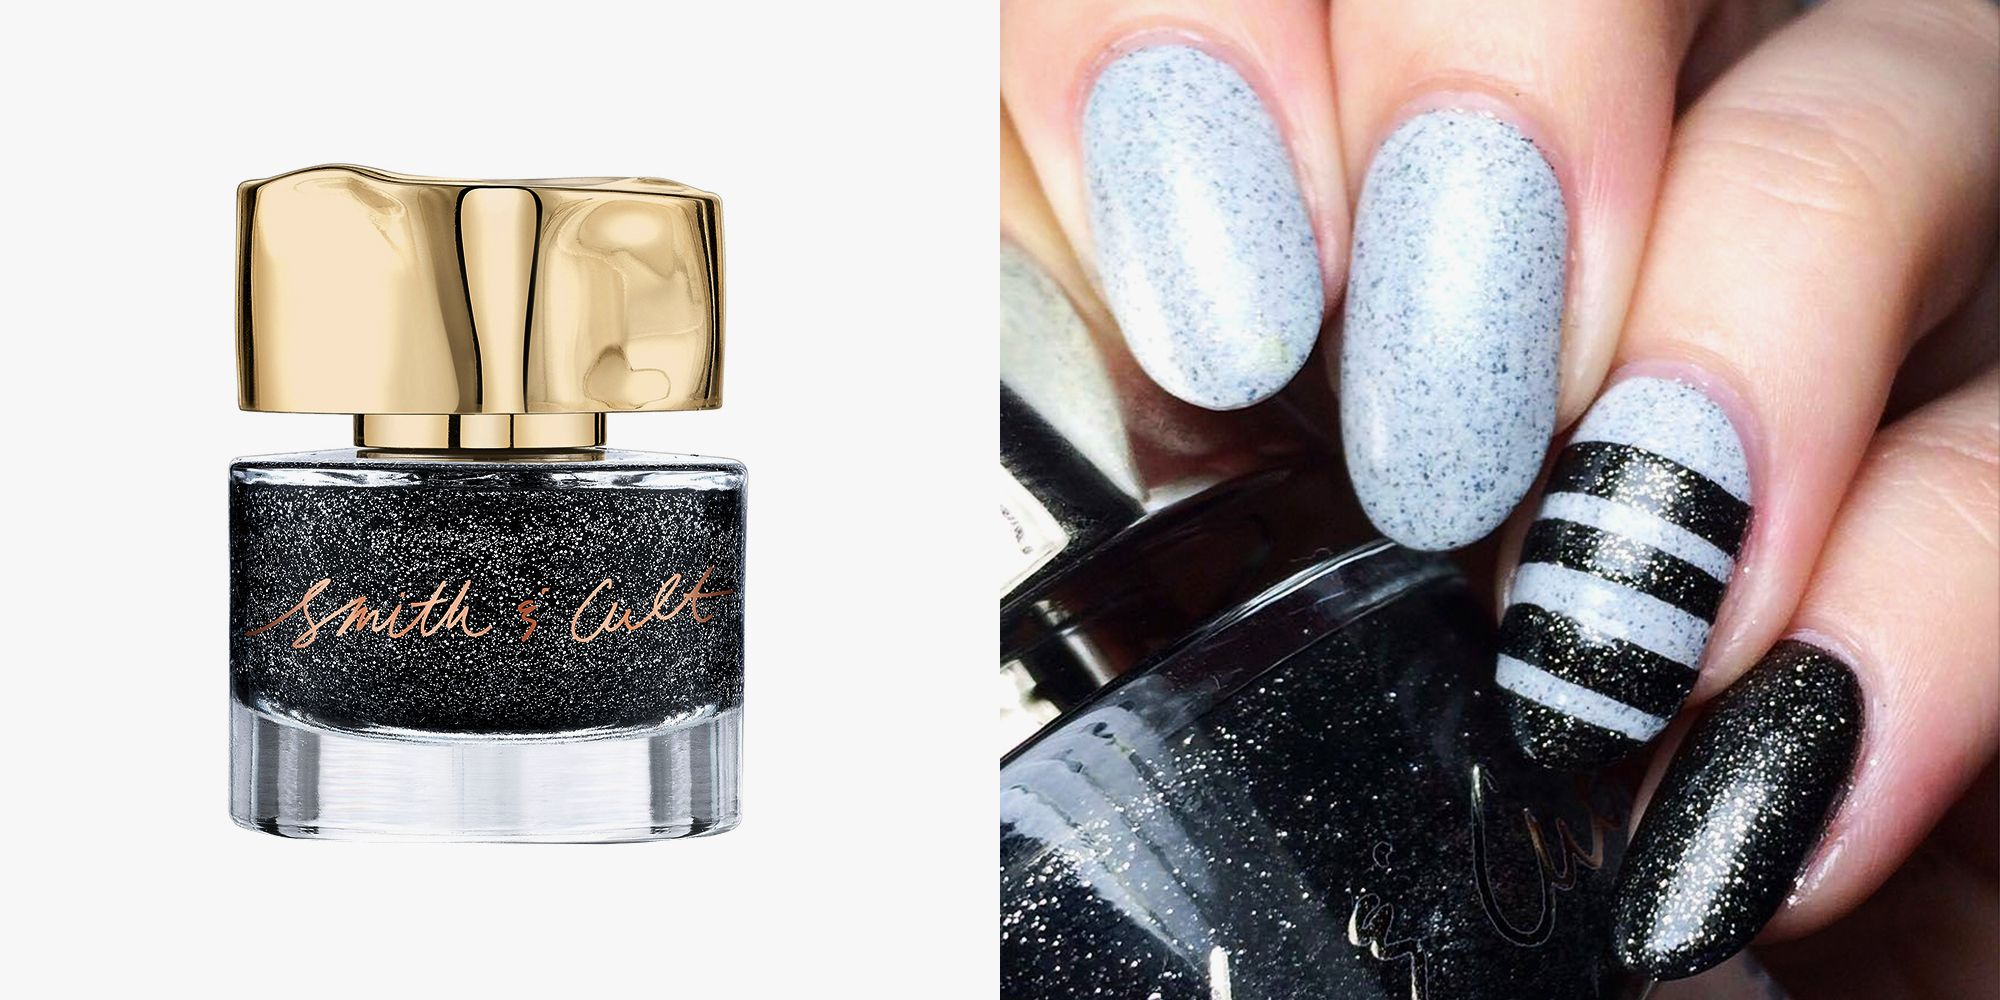 10 Best Black Nail Polish Shades of 2018 - Black Nail Polish Reviews